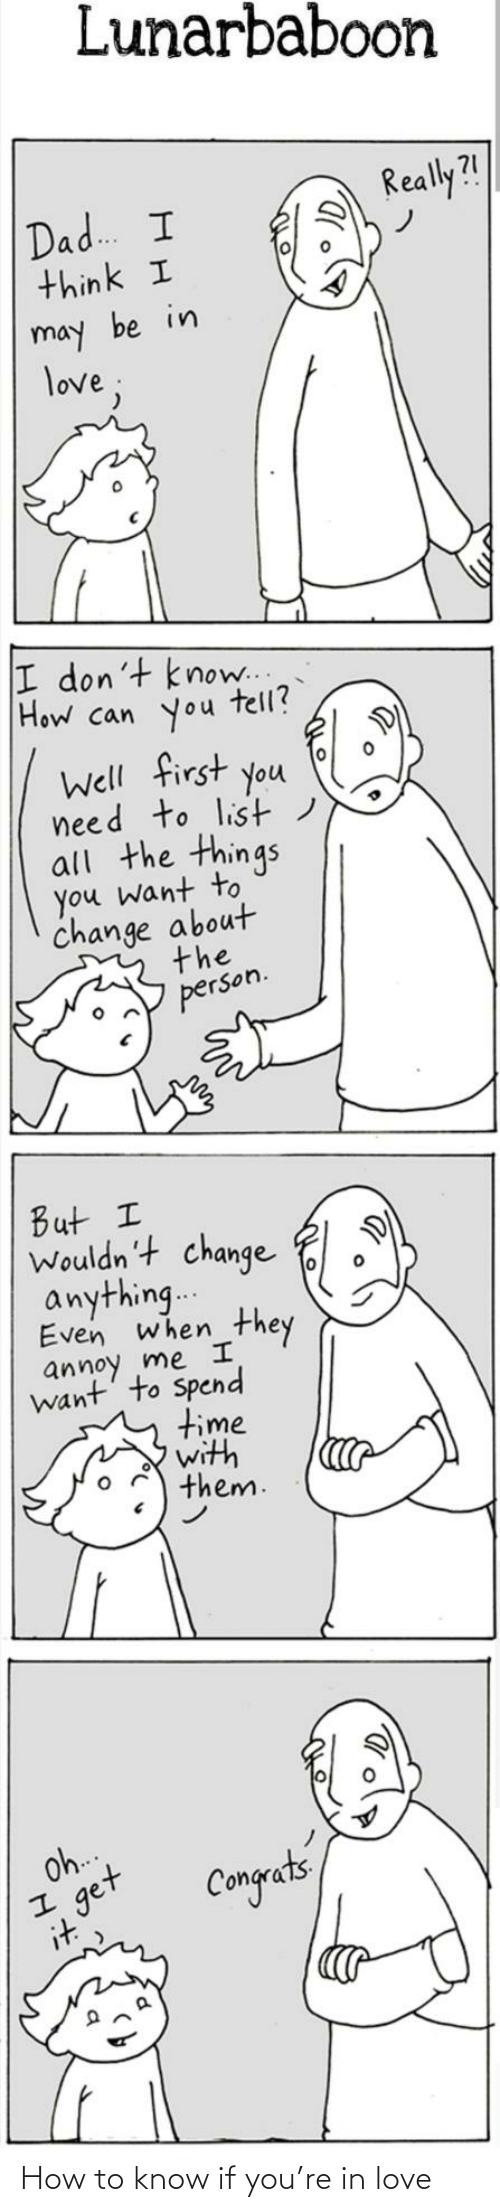 All the Things: Lunarbaboon  Really?!  Dad. I  think I  may be in  love;  I don't know..  How can you  tell?  Well first you  need to list)  all the things  you want to  change about  the  person.  But I  Wouldn't change  anything..  Even when  they  annoy me I  want' to Spend  time  with  them.  Oh.  get  it  Congets How to know if you're in love